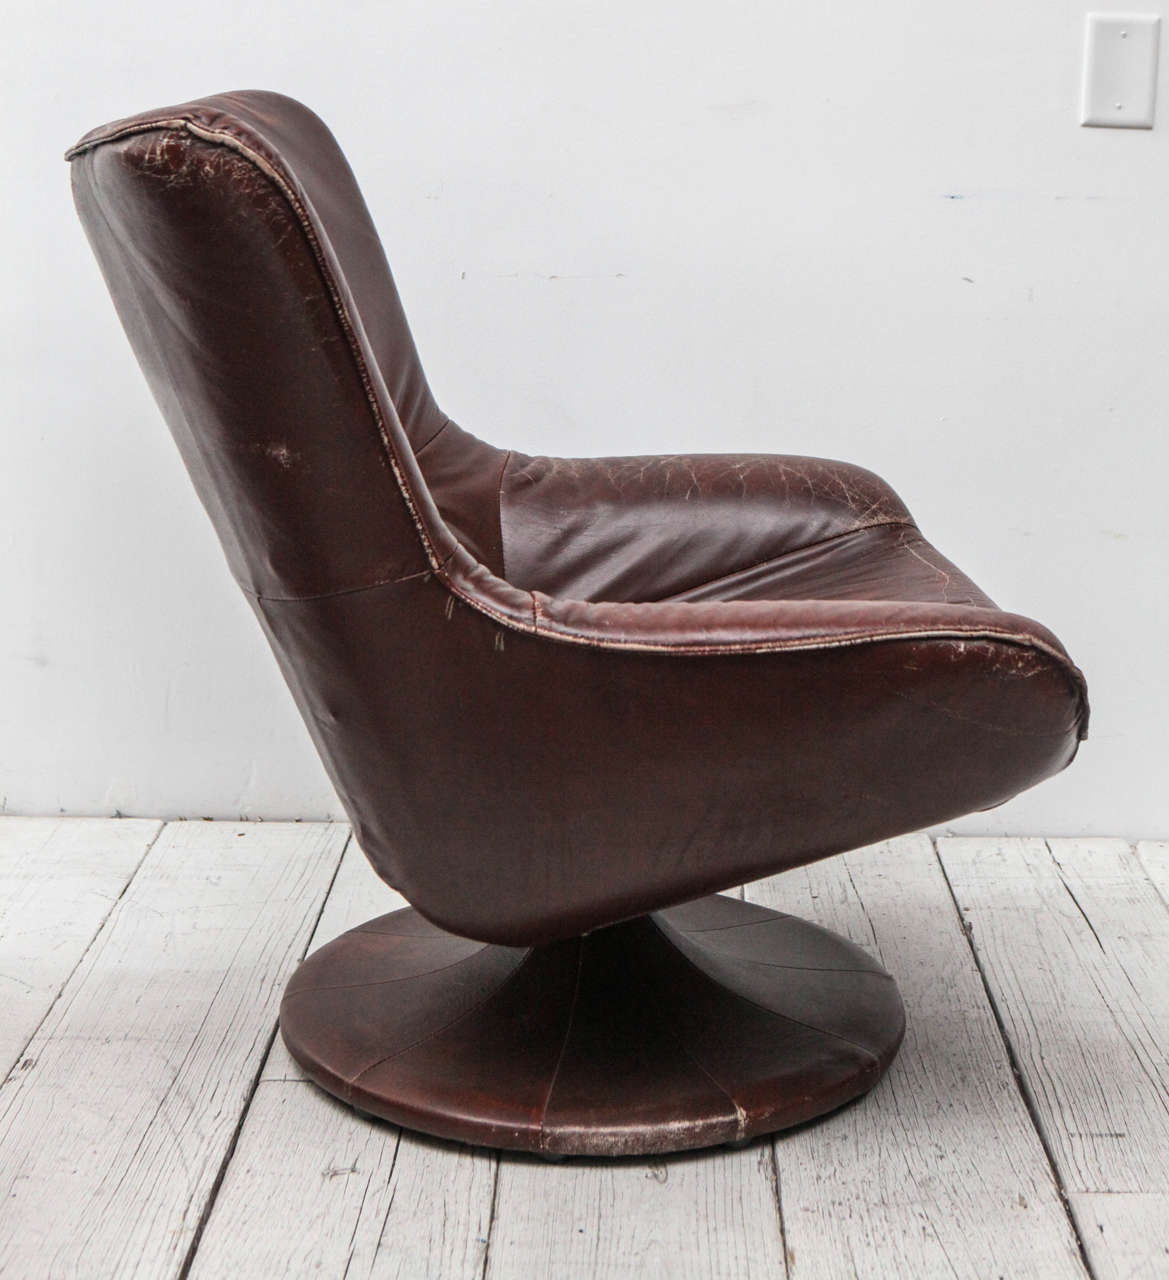 Leather Gerard Van Den Berg Style Swivel Chair At 1stdibs